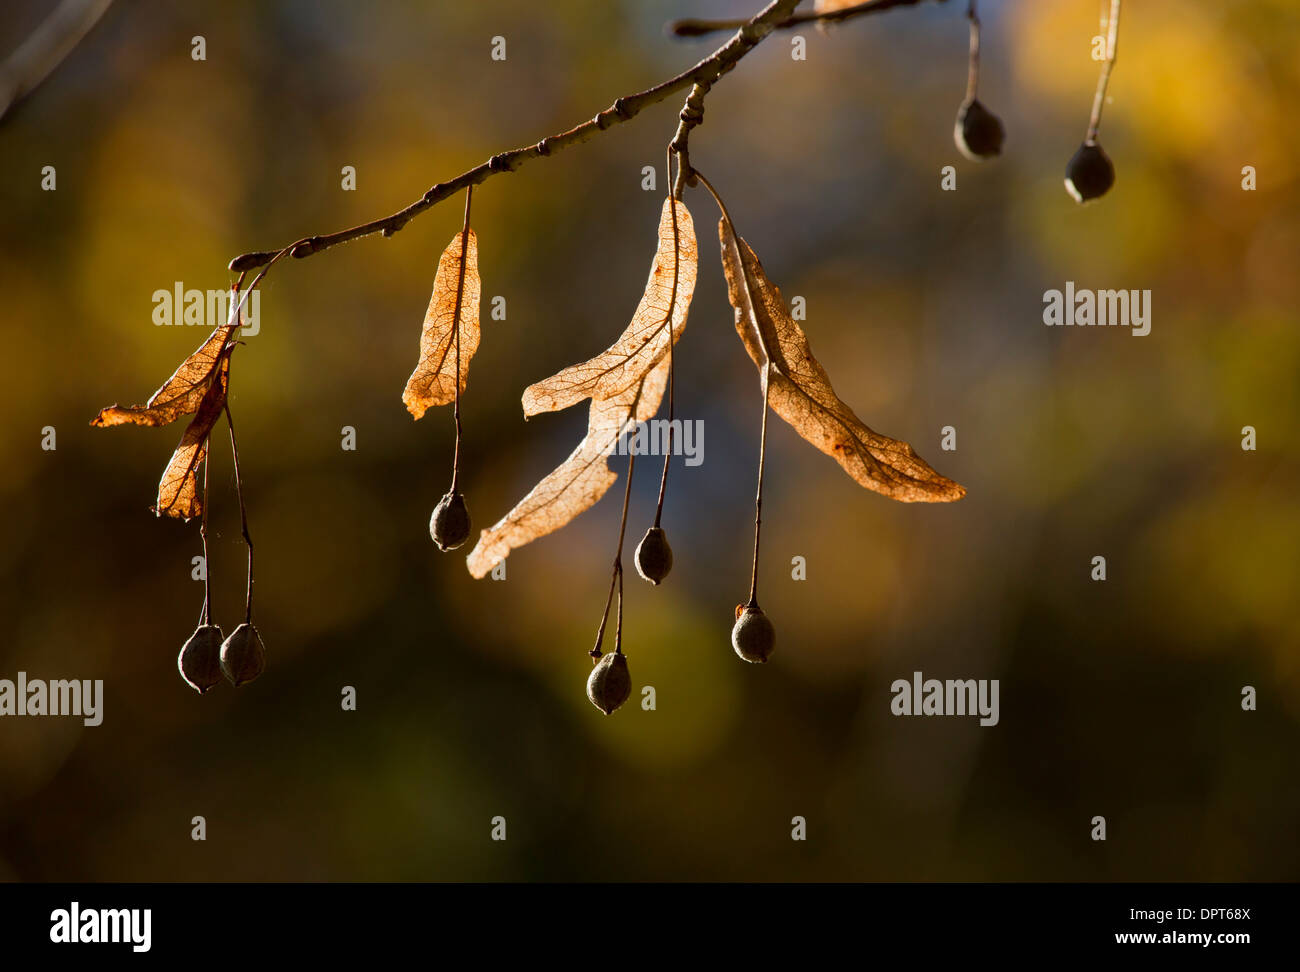 Fruits and bracts of Large-leaved Lime, Tilia platyphyllos in autumn. Stock Photo